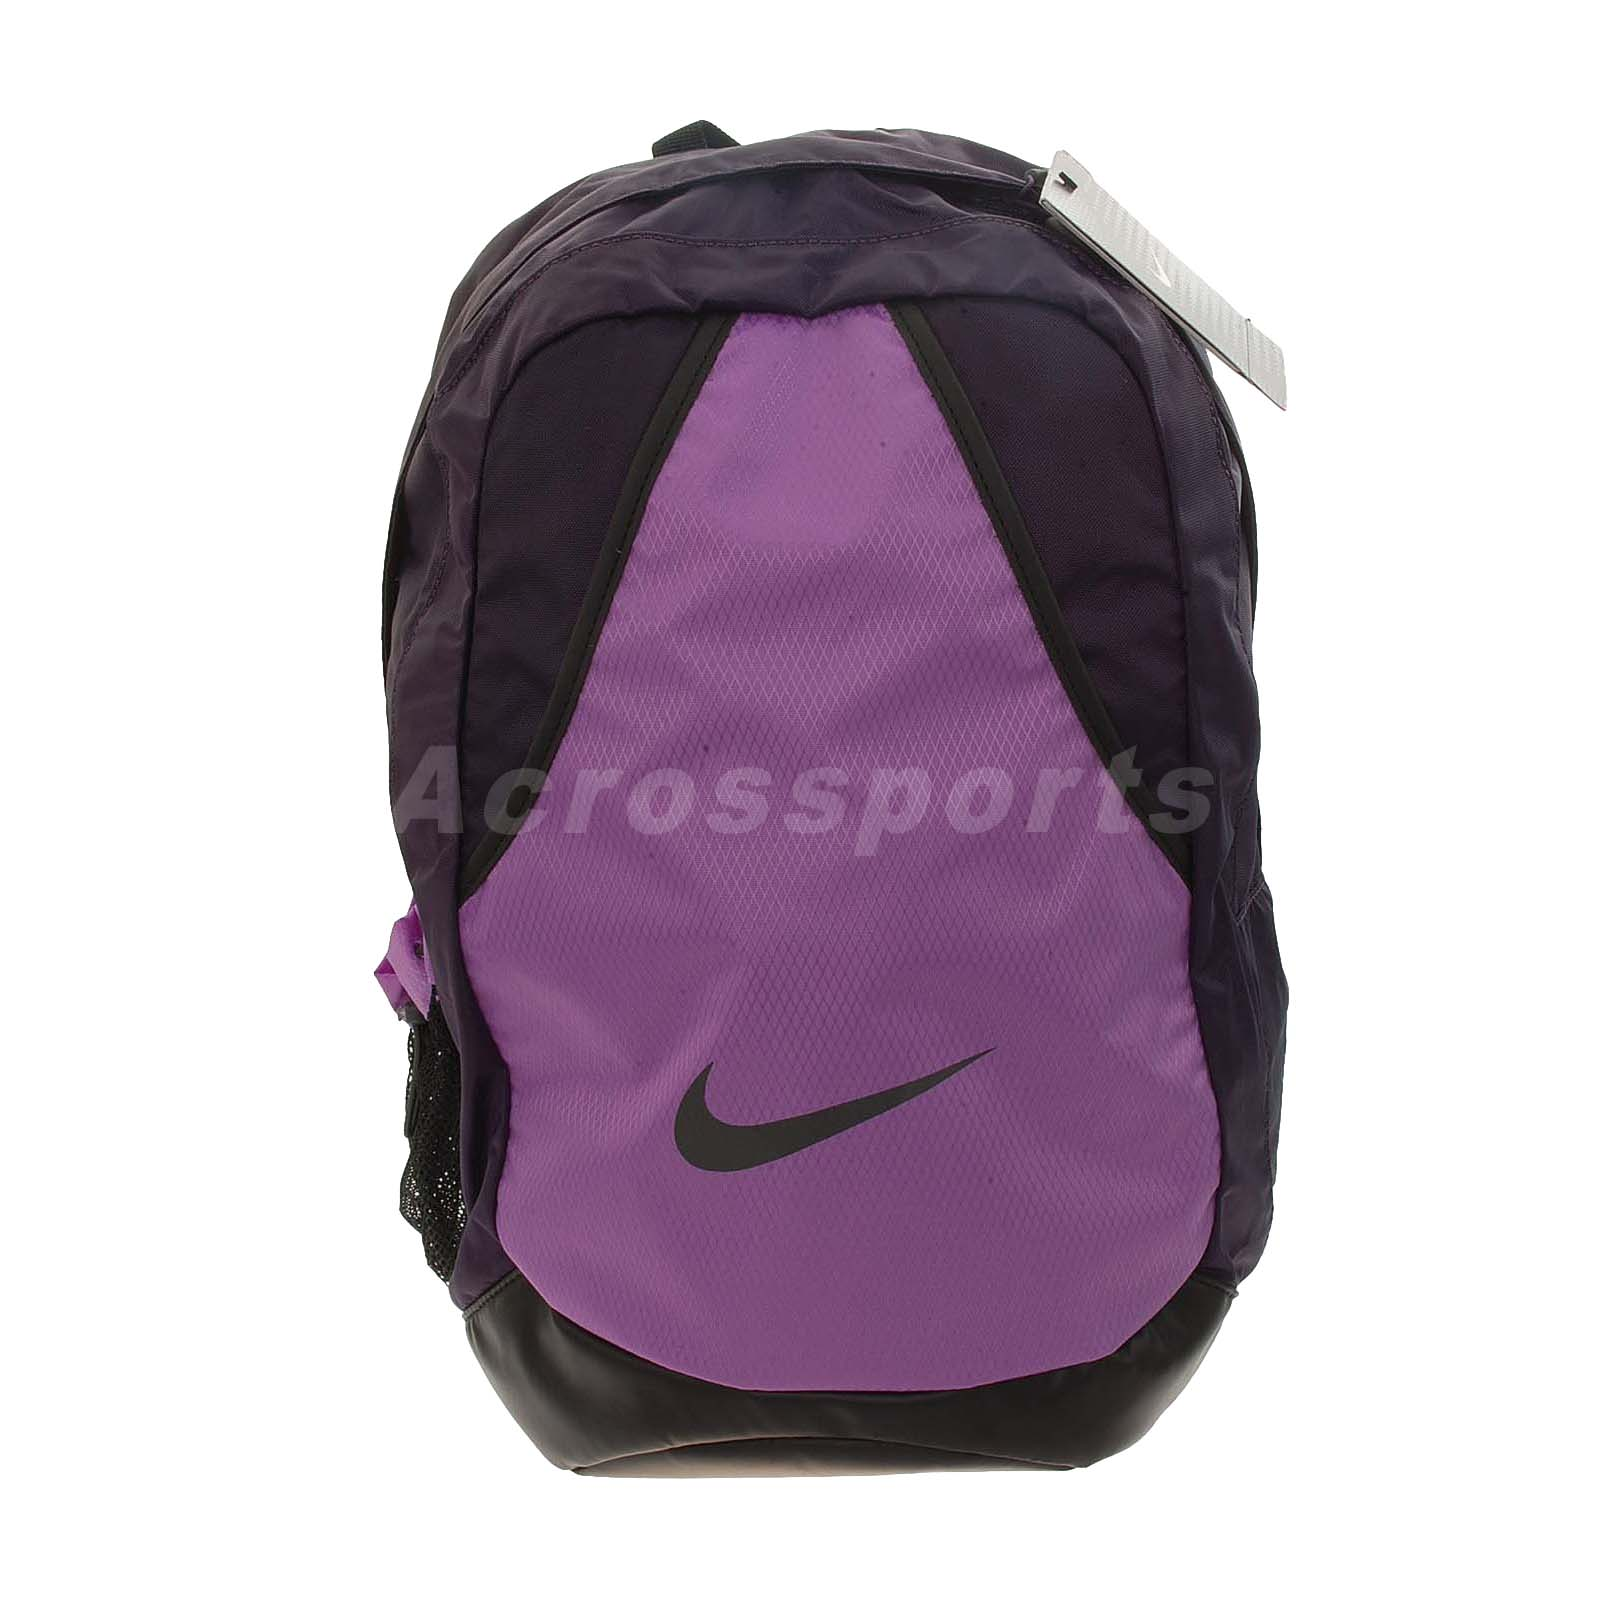 Simple Quality Nike Accessories Online Sale  Nike Club Team Sports Bag Women